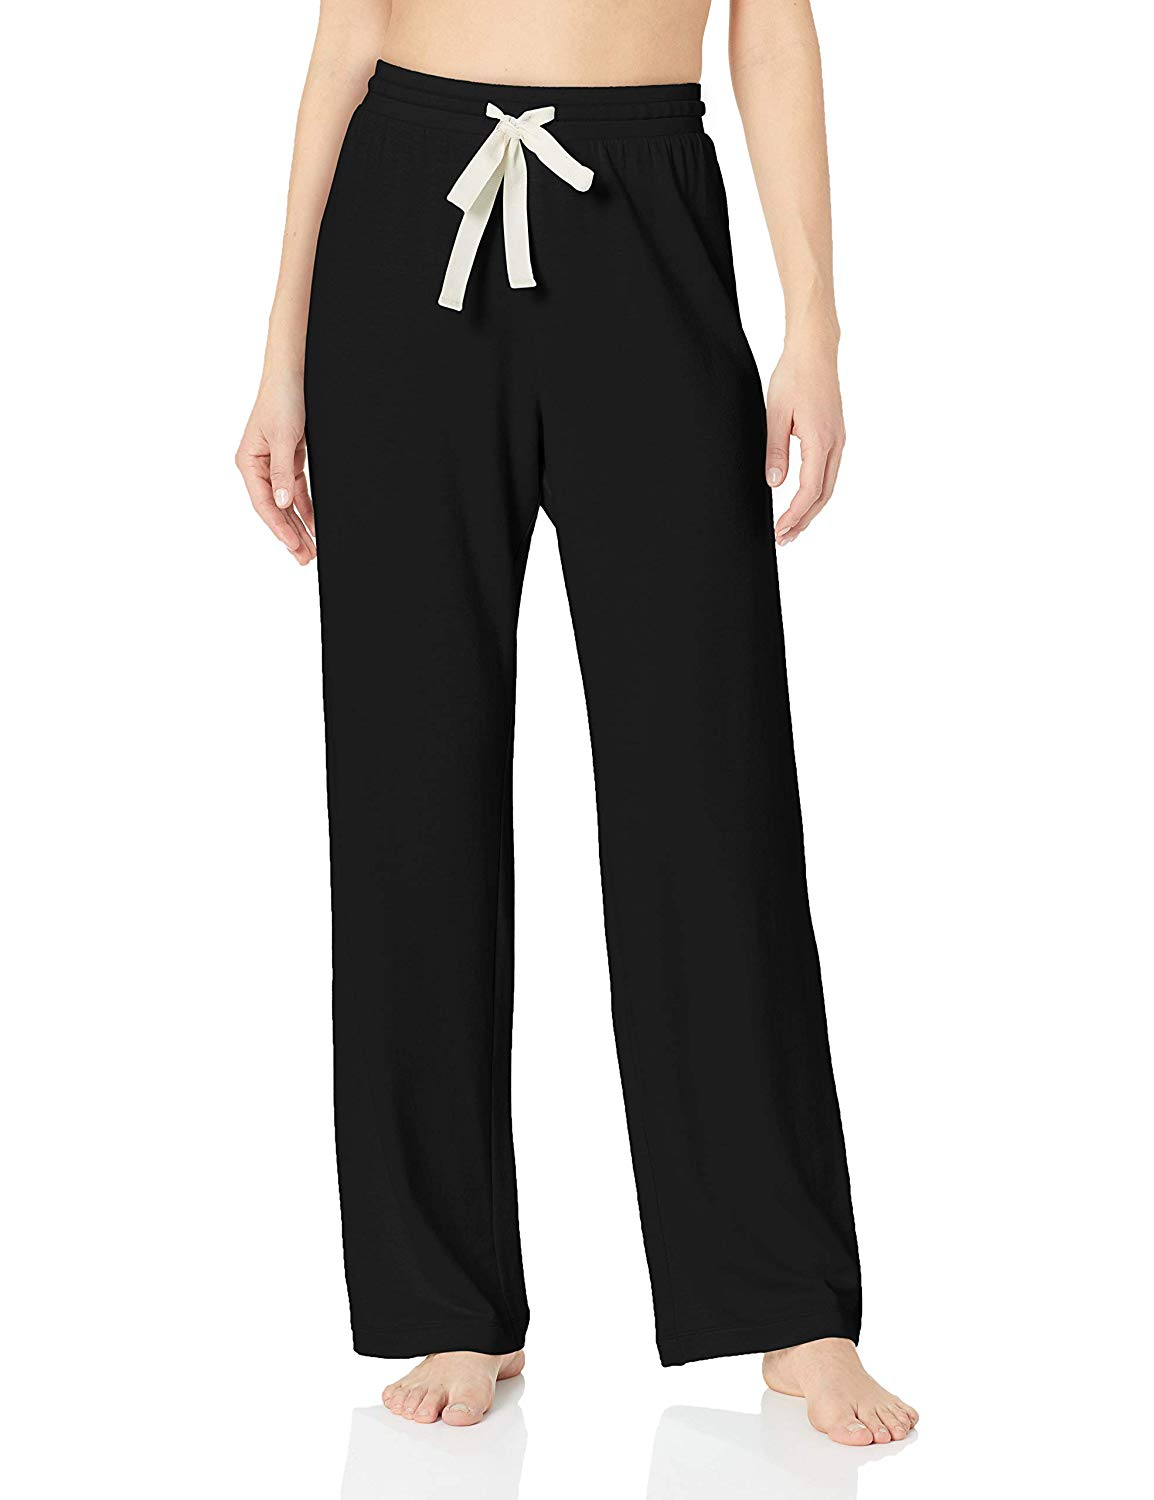 Amazon Essentials Women's Lightweight Lounge Terry Pant